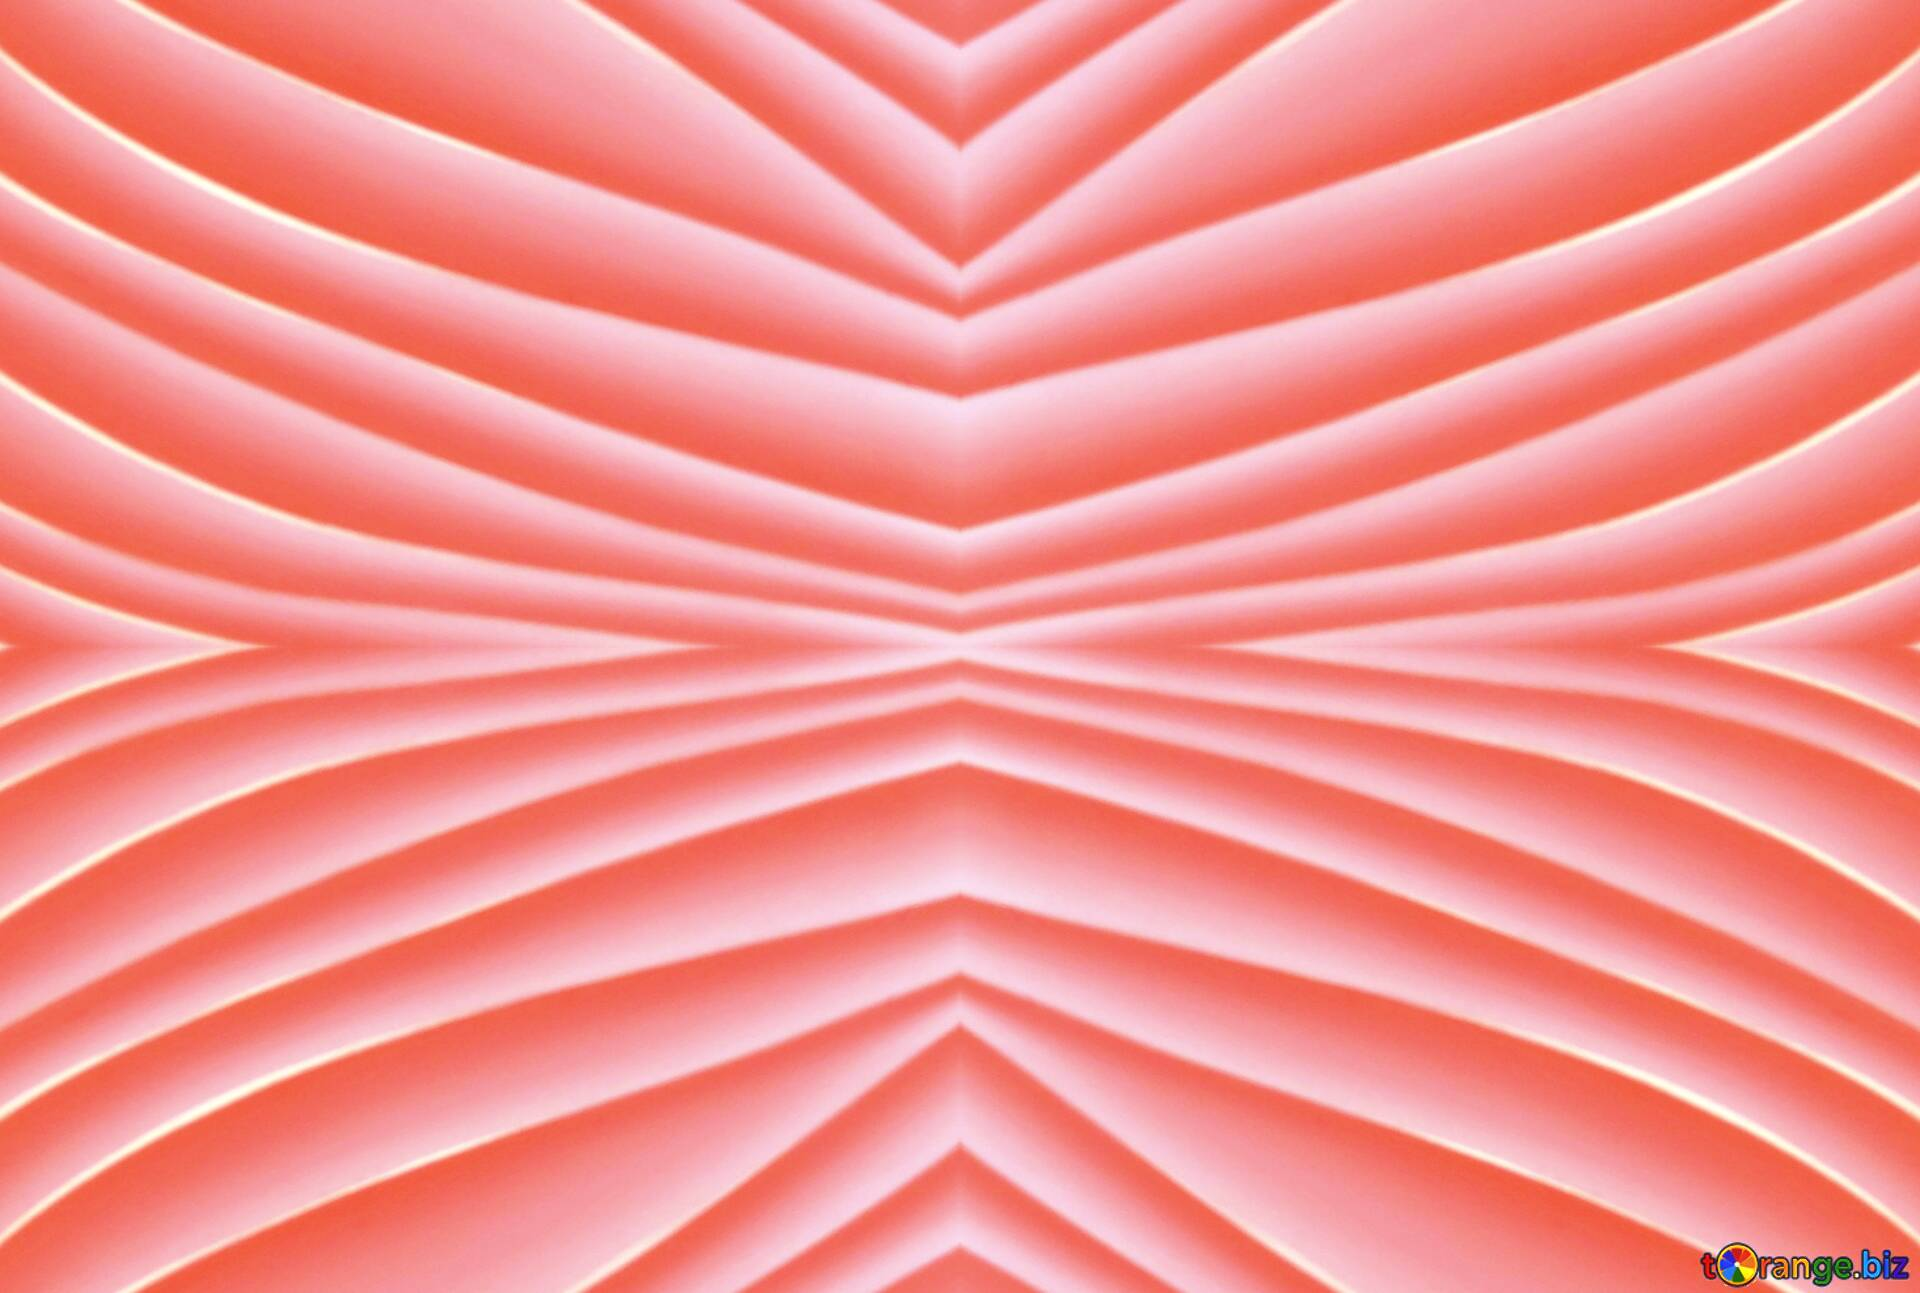 Download Free Picture Texture Pattern Of Curves Rose Colors On Cc By License Free Image Stock Torange Biz Fx 109989